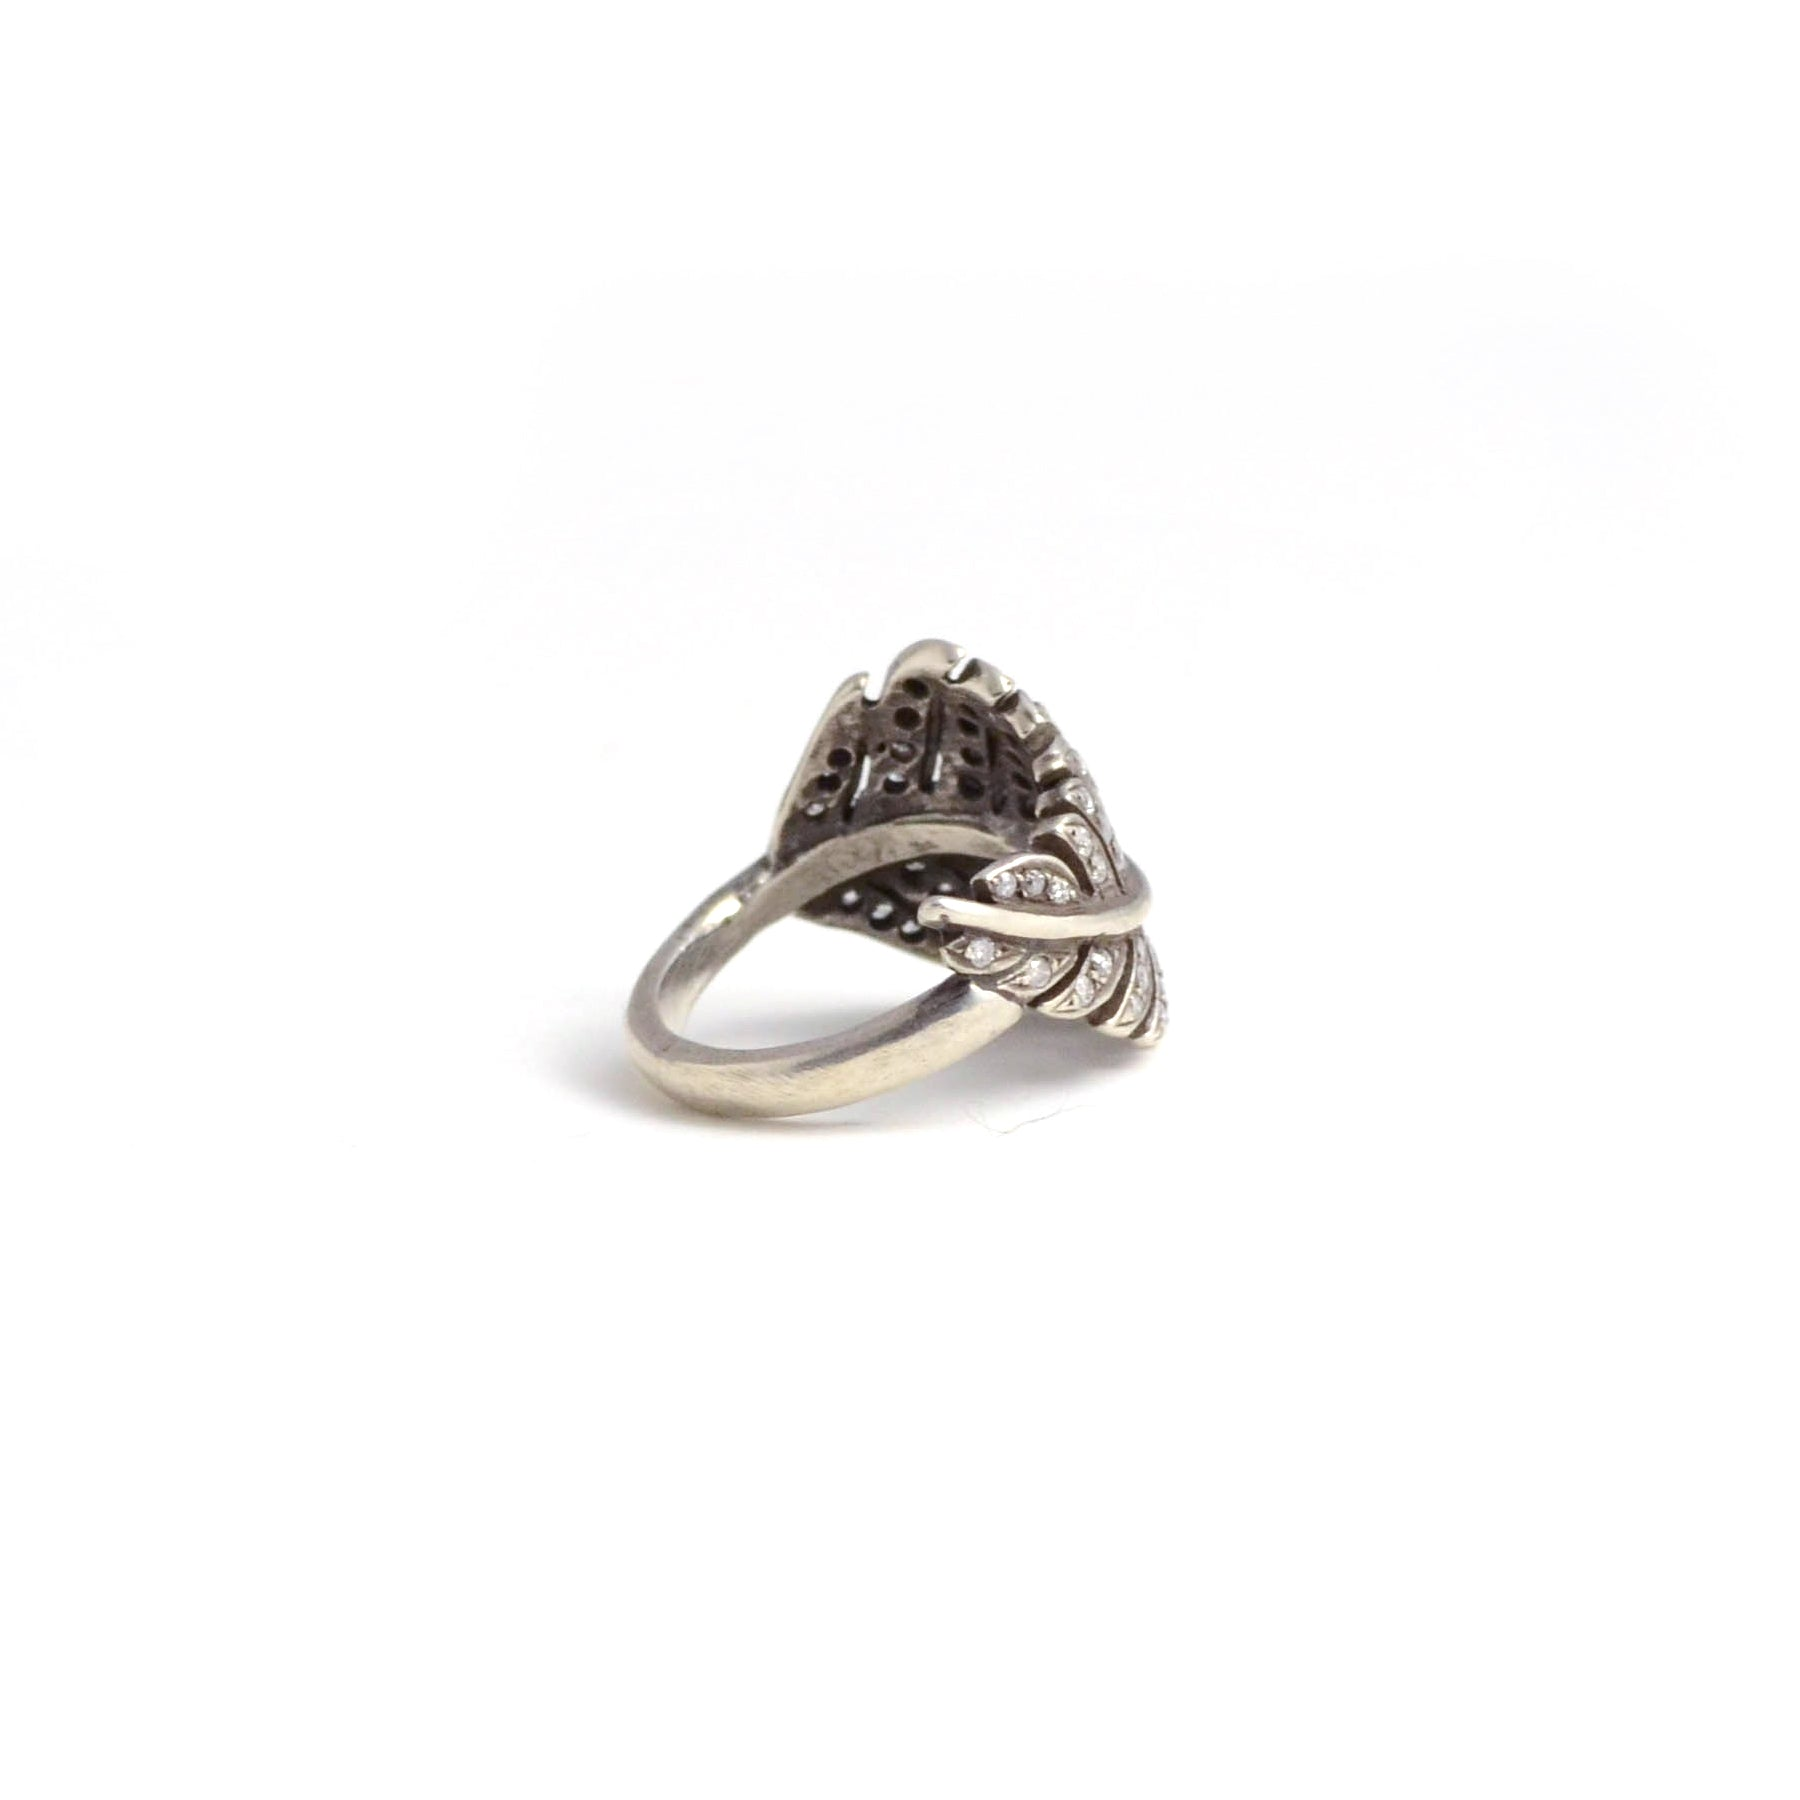 rit Design ring. A little bit vintage...a little bit edgy. Silver and diamonds give a gorgeous glow to this leaf shaped ring. Interior view.